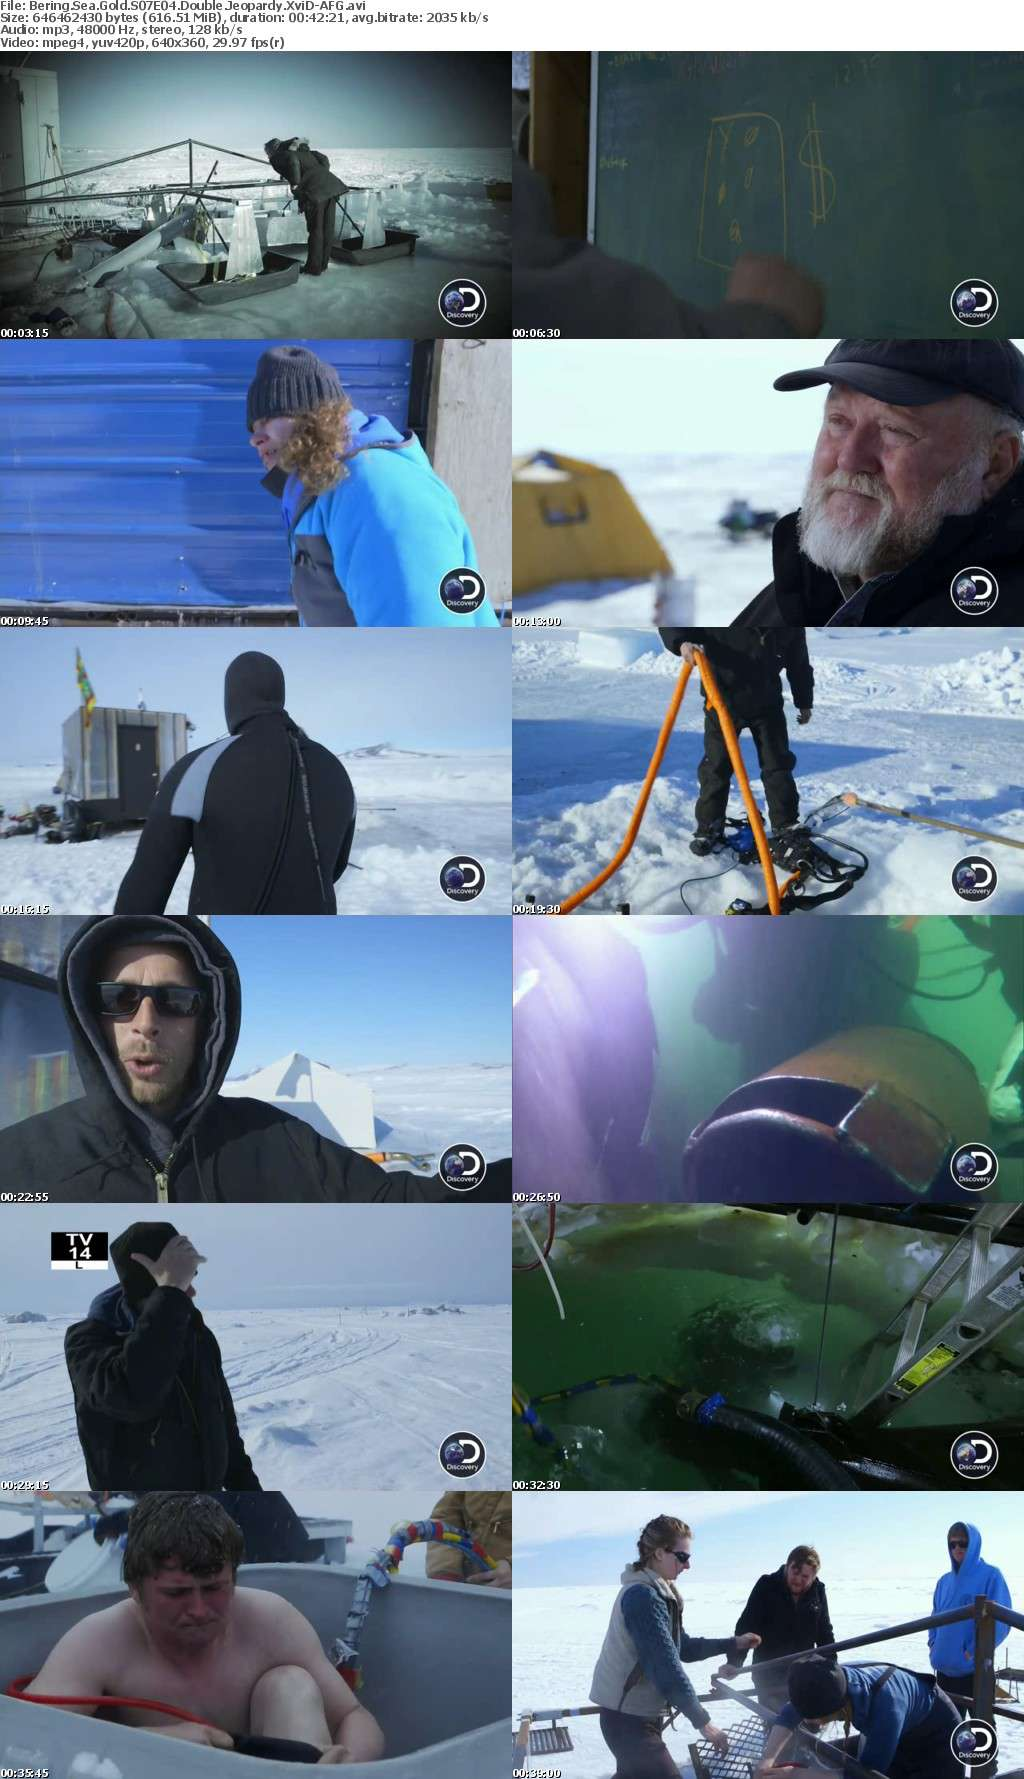 Bering Sea Gold S07E04 Double Jeopardy XviD-AFG